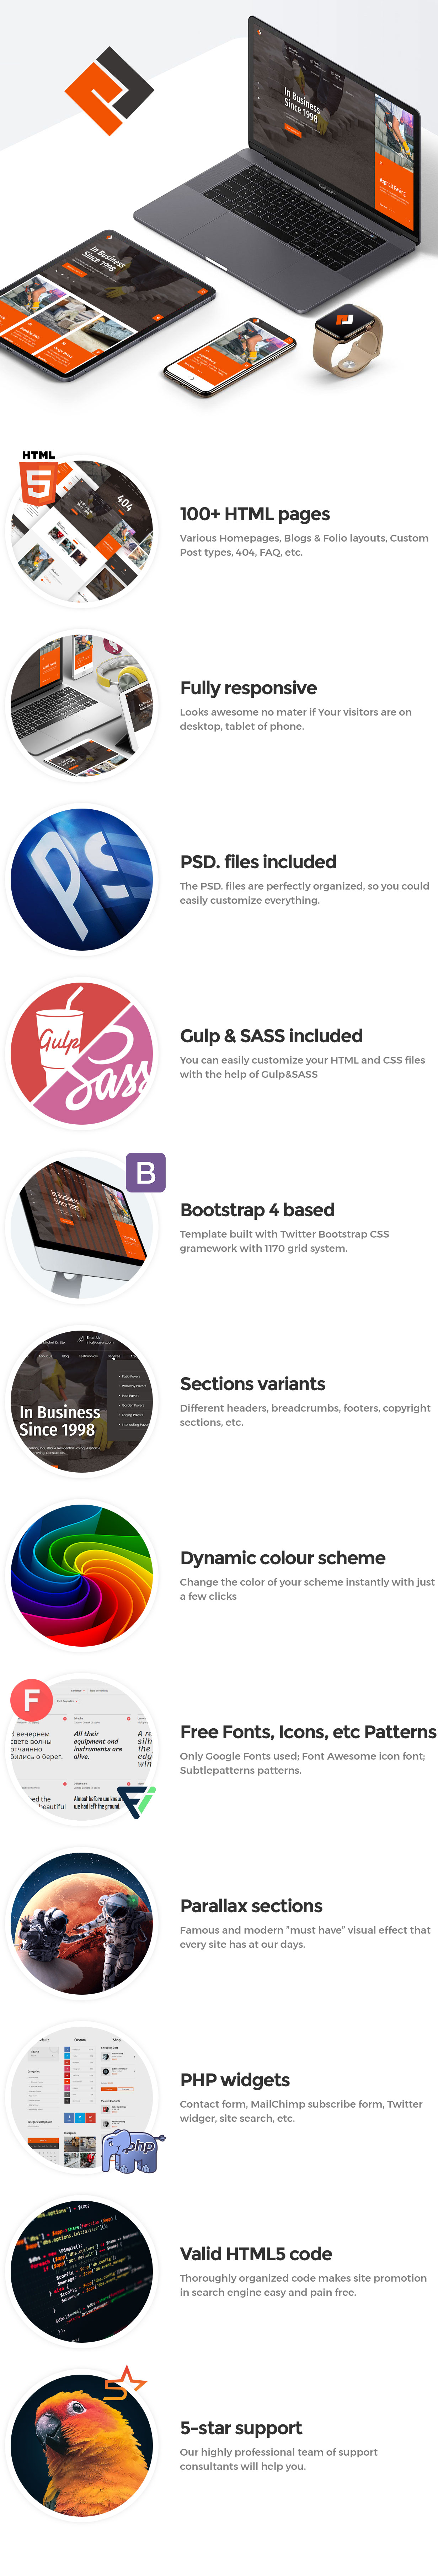 Pawex - Paving Contractor HTML Template - 1